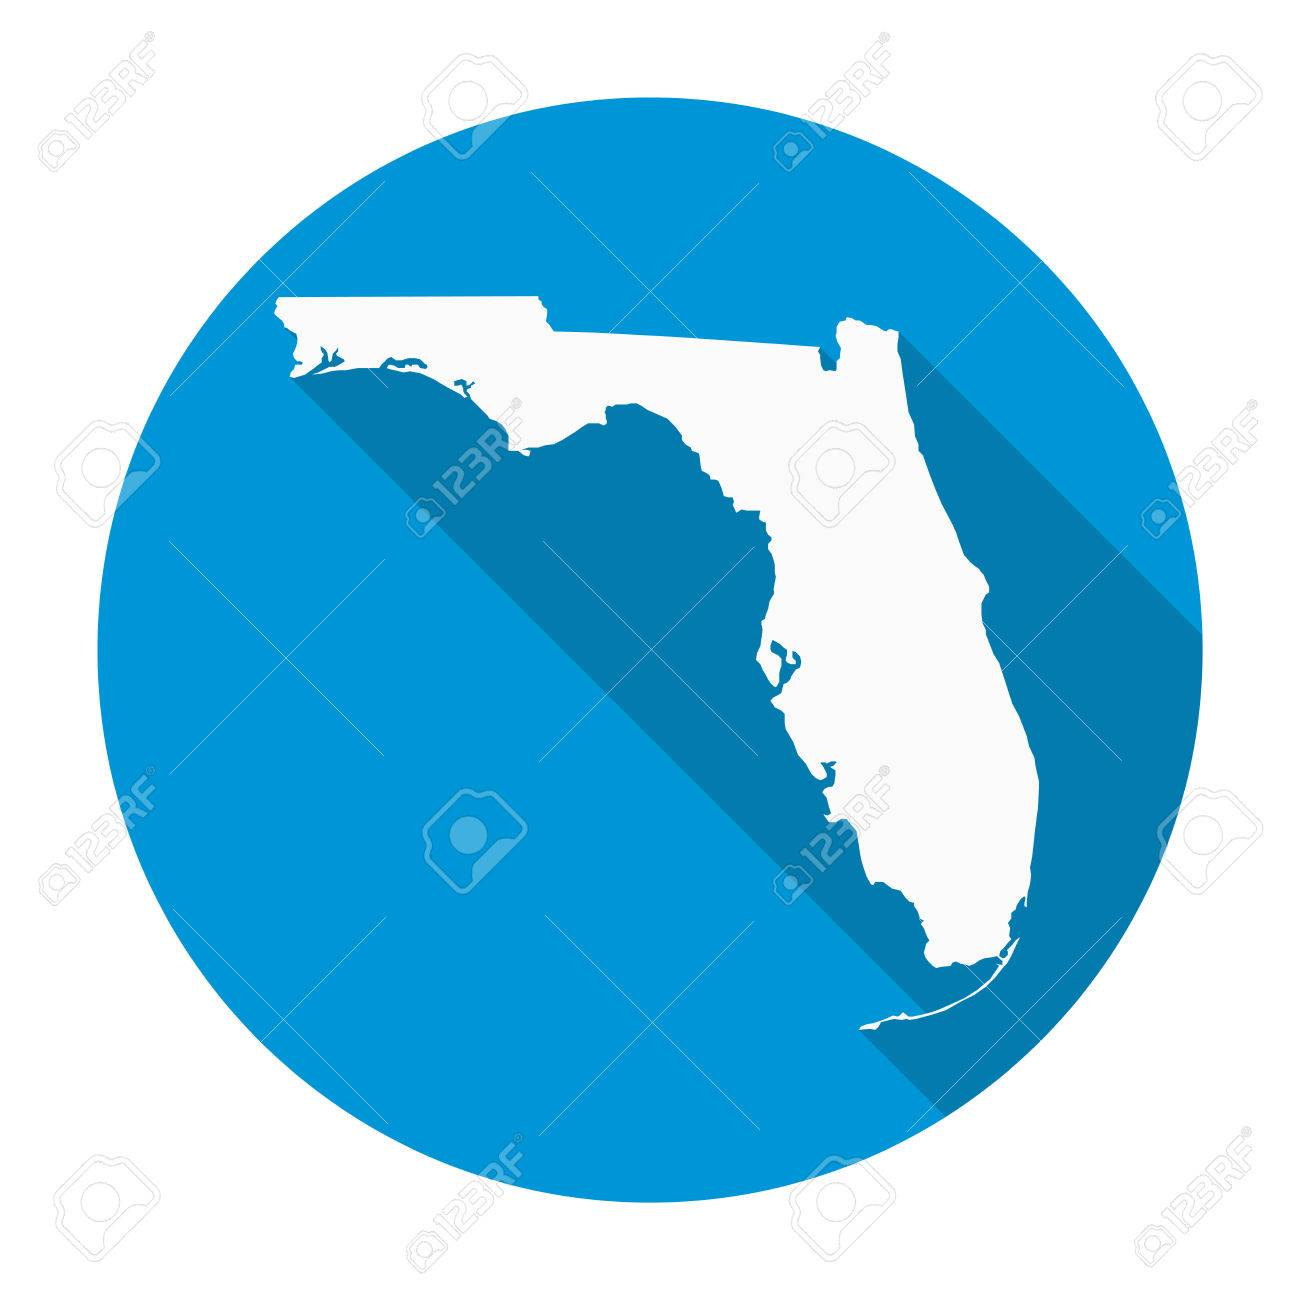 Florida state map flat icon with long shadow eps 10 vector florida state map flat icon with long shadow eps 10 vector illustration stock vector gumiabroncs Gallery